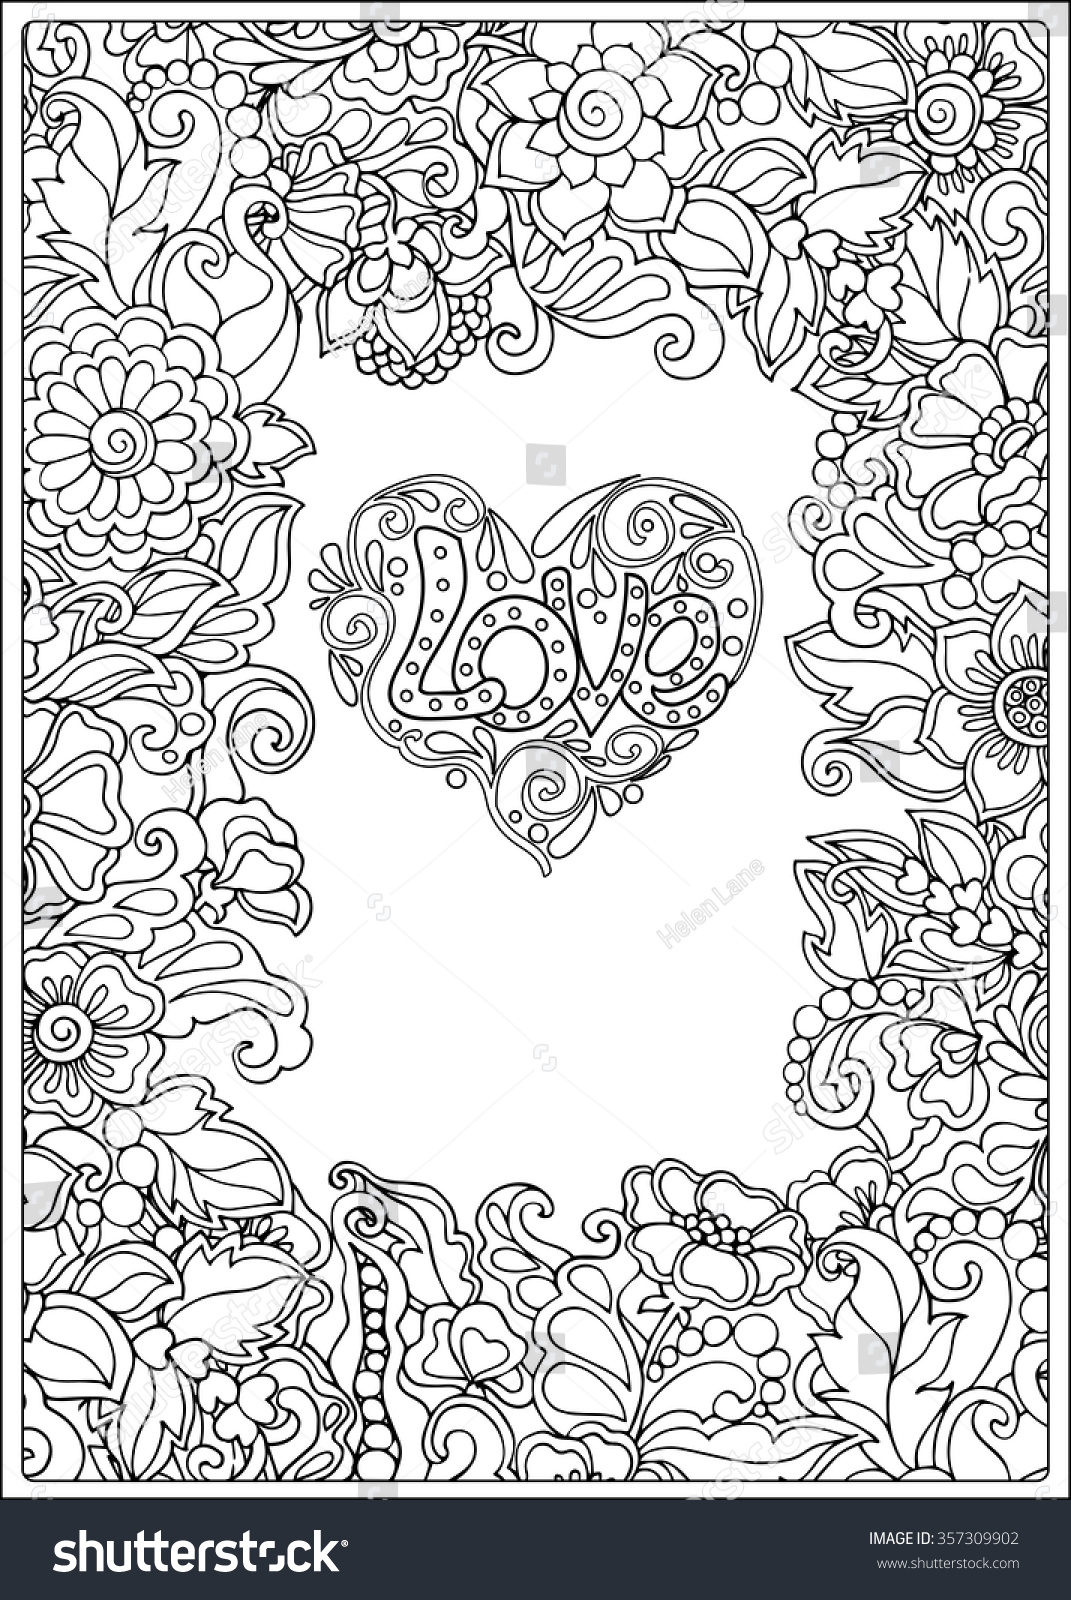 older valentines day coloring pages - photo#5